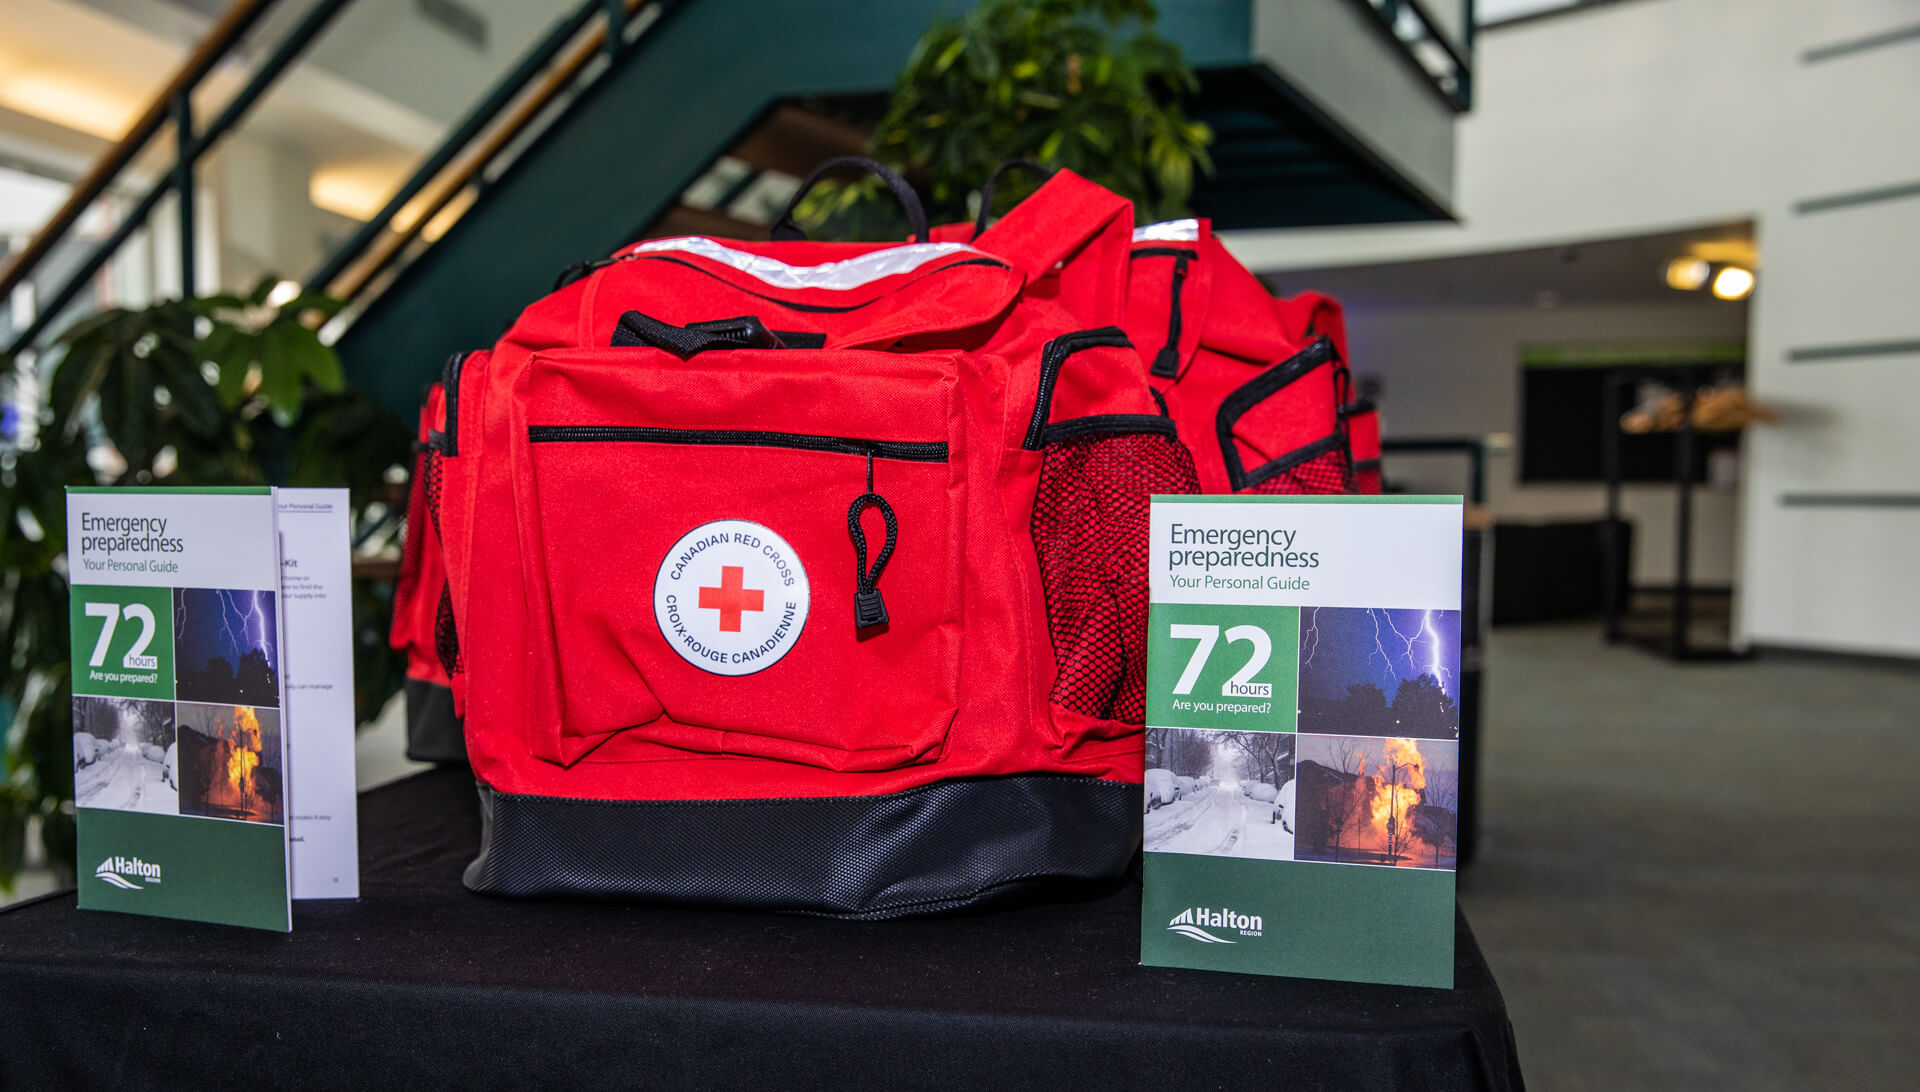 An emergency preparedness kit with the personal emergency preparedness guide.